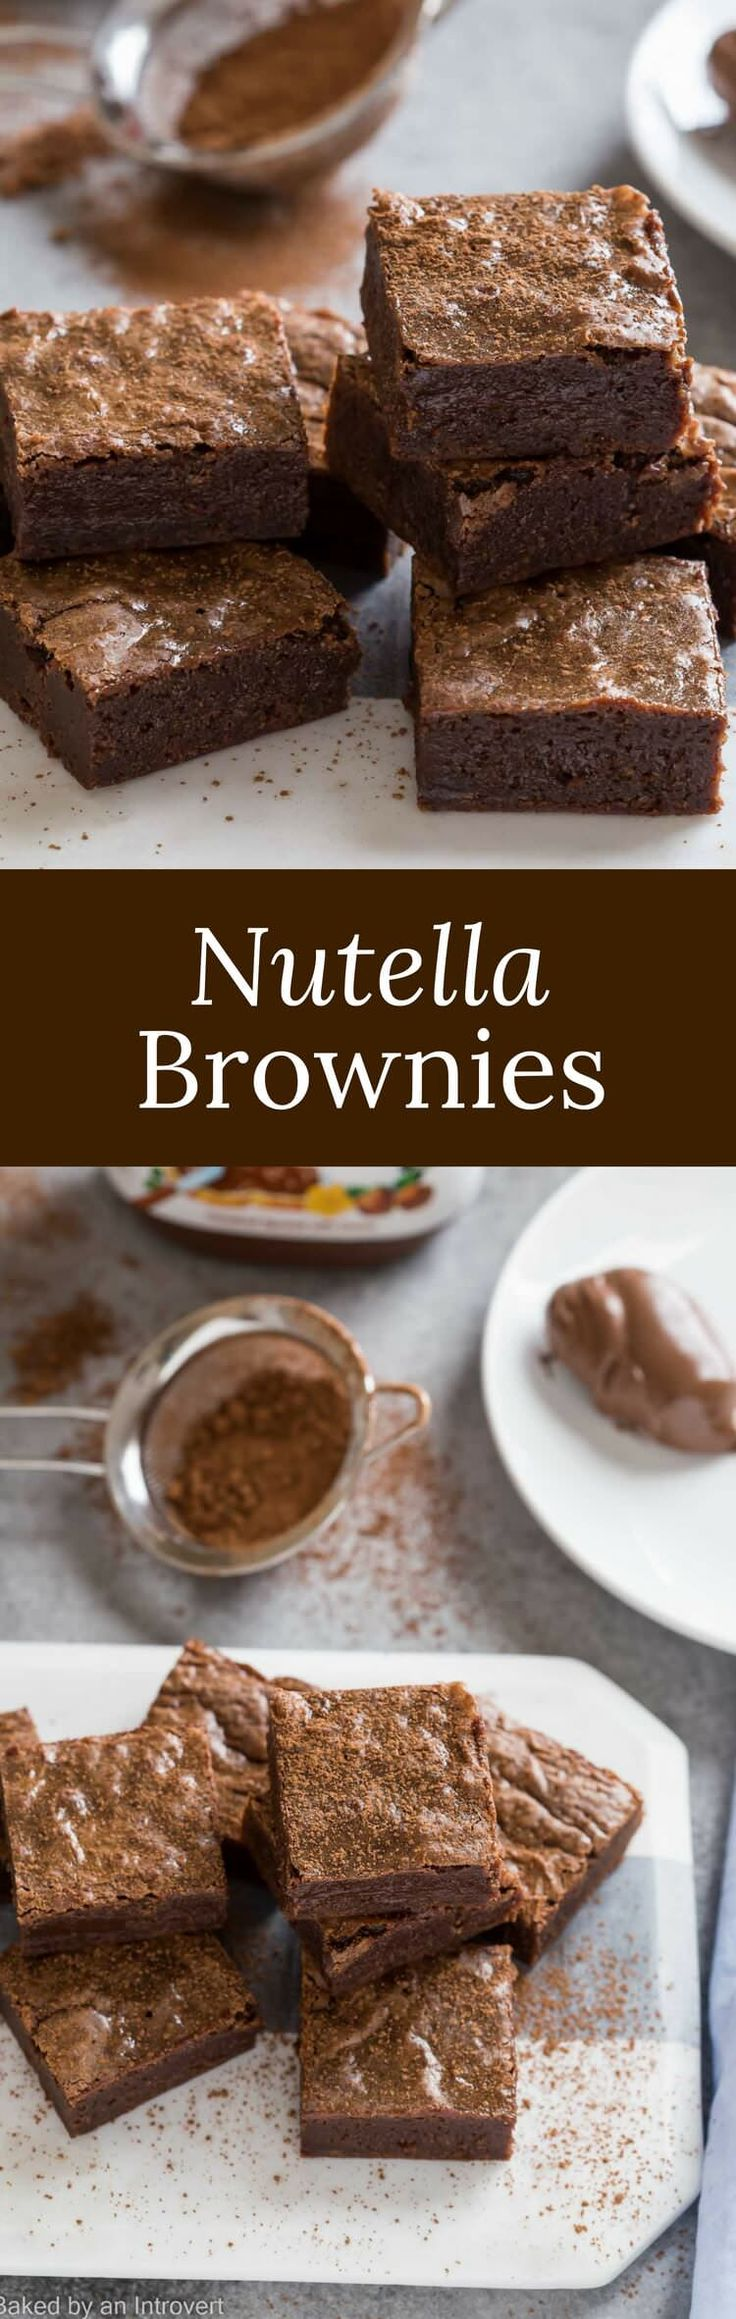 If you love to indulge in the thick chocolate hazelnut spread known as Nutella, you will go absolutely nuts for these Nutella Brownies. via @introvertbaker